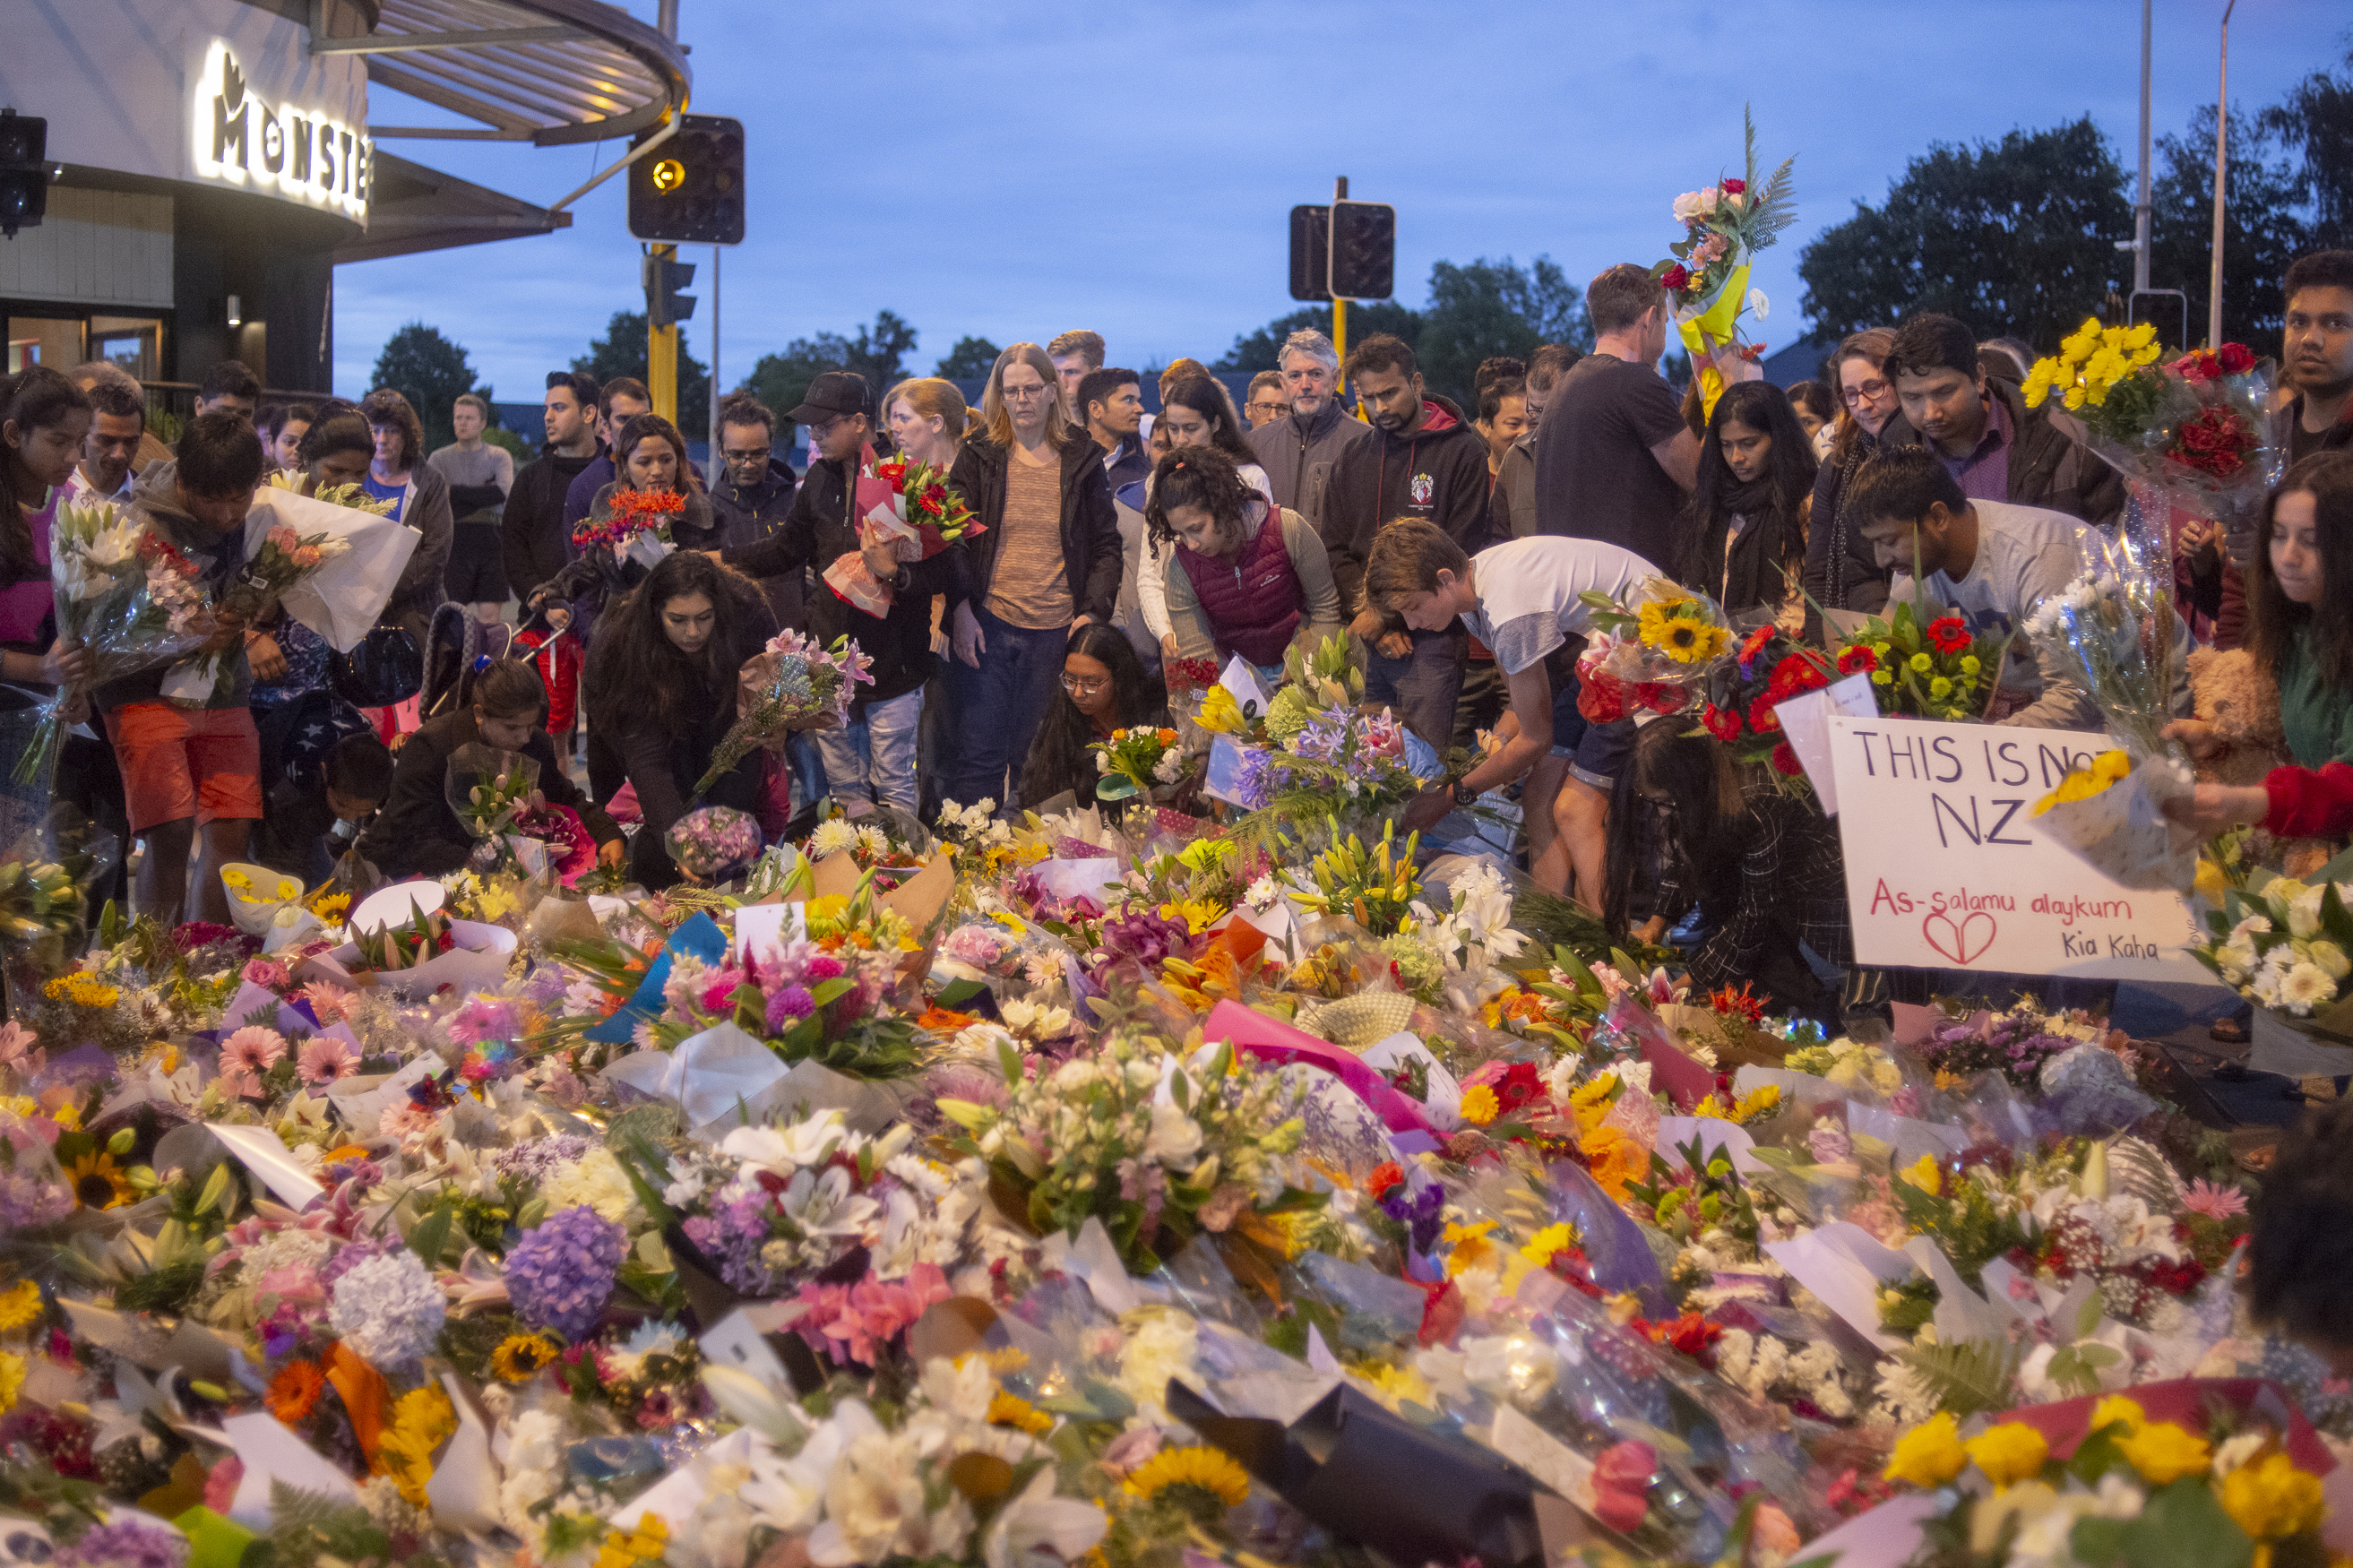 People pay their respects for victims of the March 15 mosque attacks, in Christchurch on March 16, 2019.